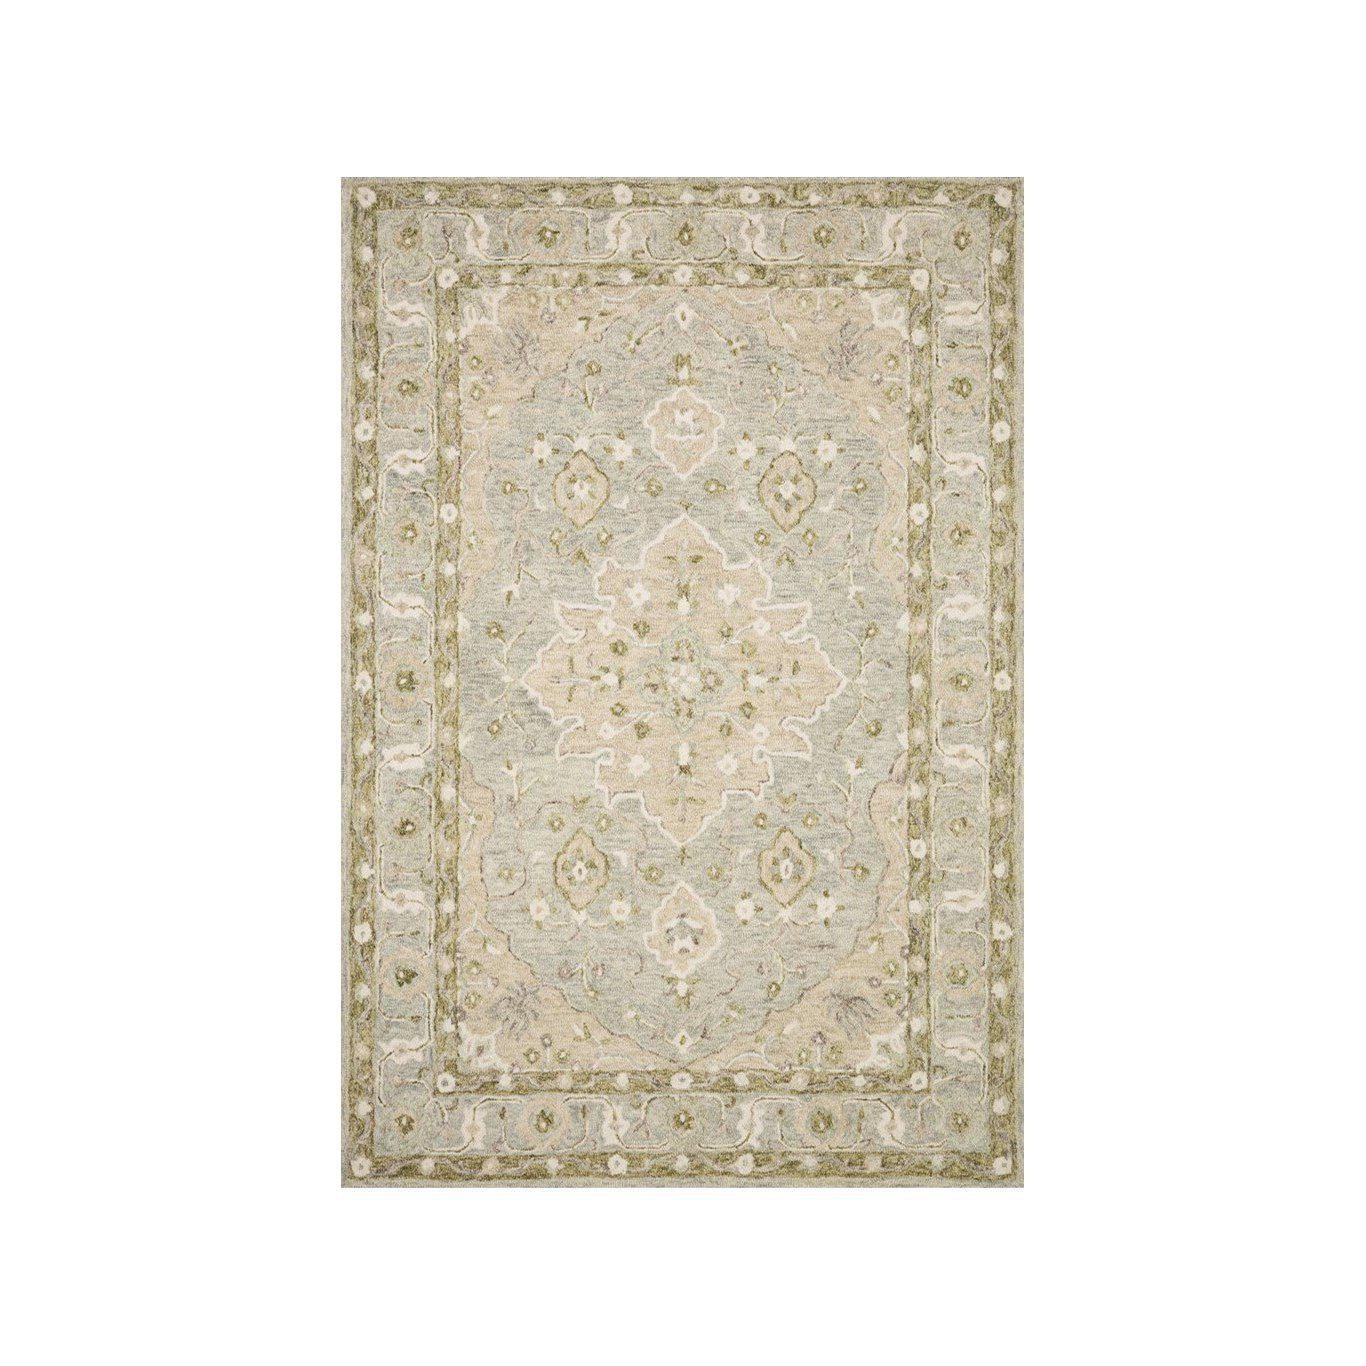 Joanna Gaines Ryeland Rug Collection - RYE-06 Grey/Sage